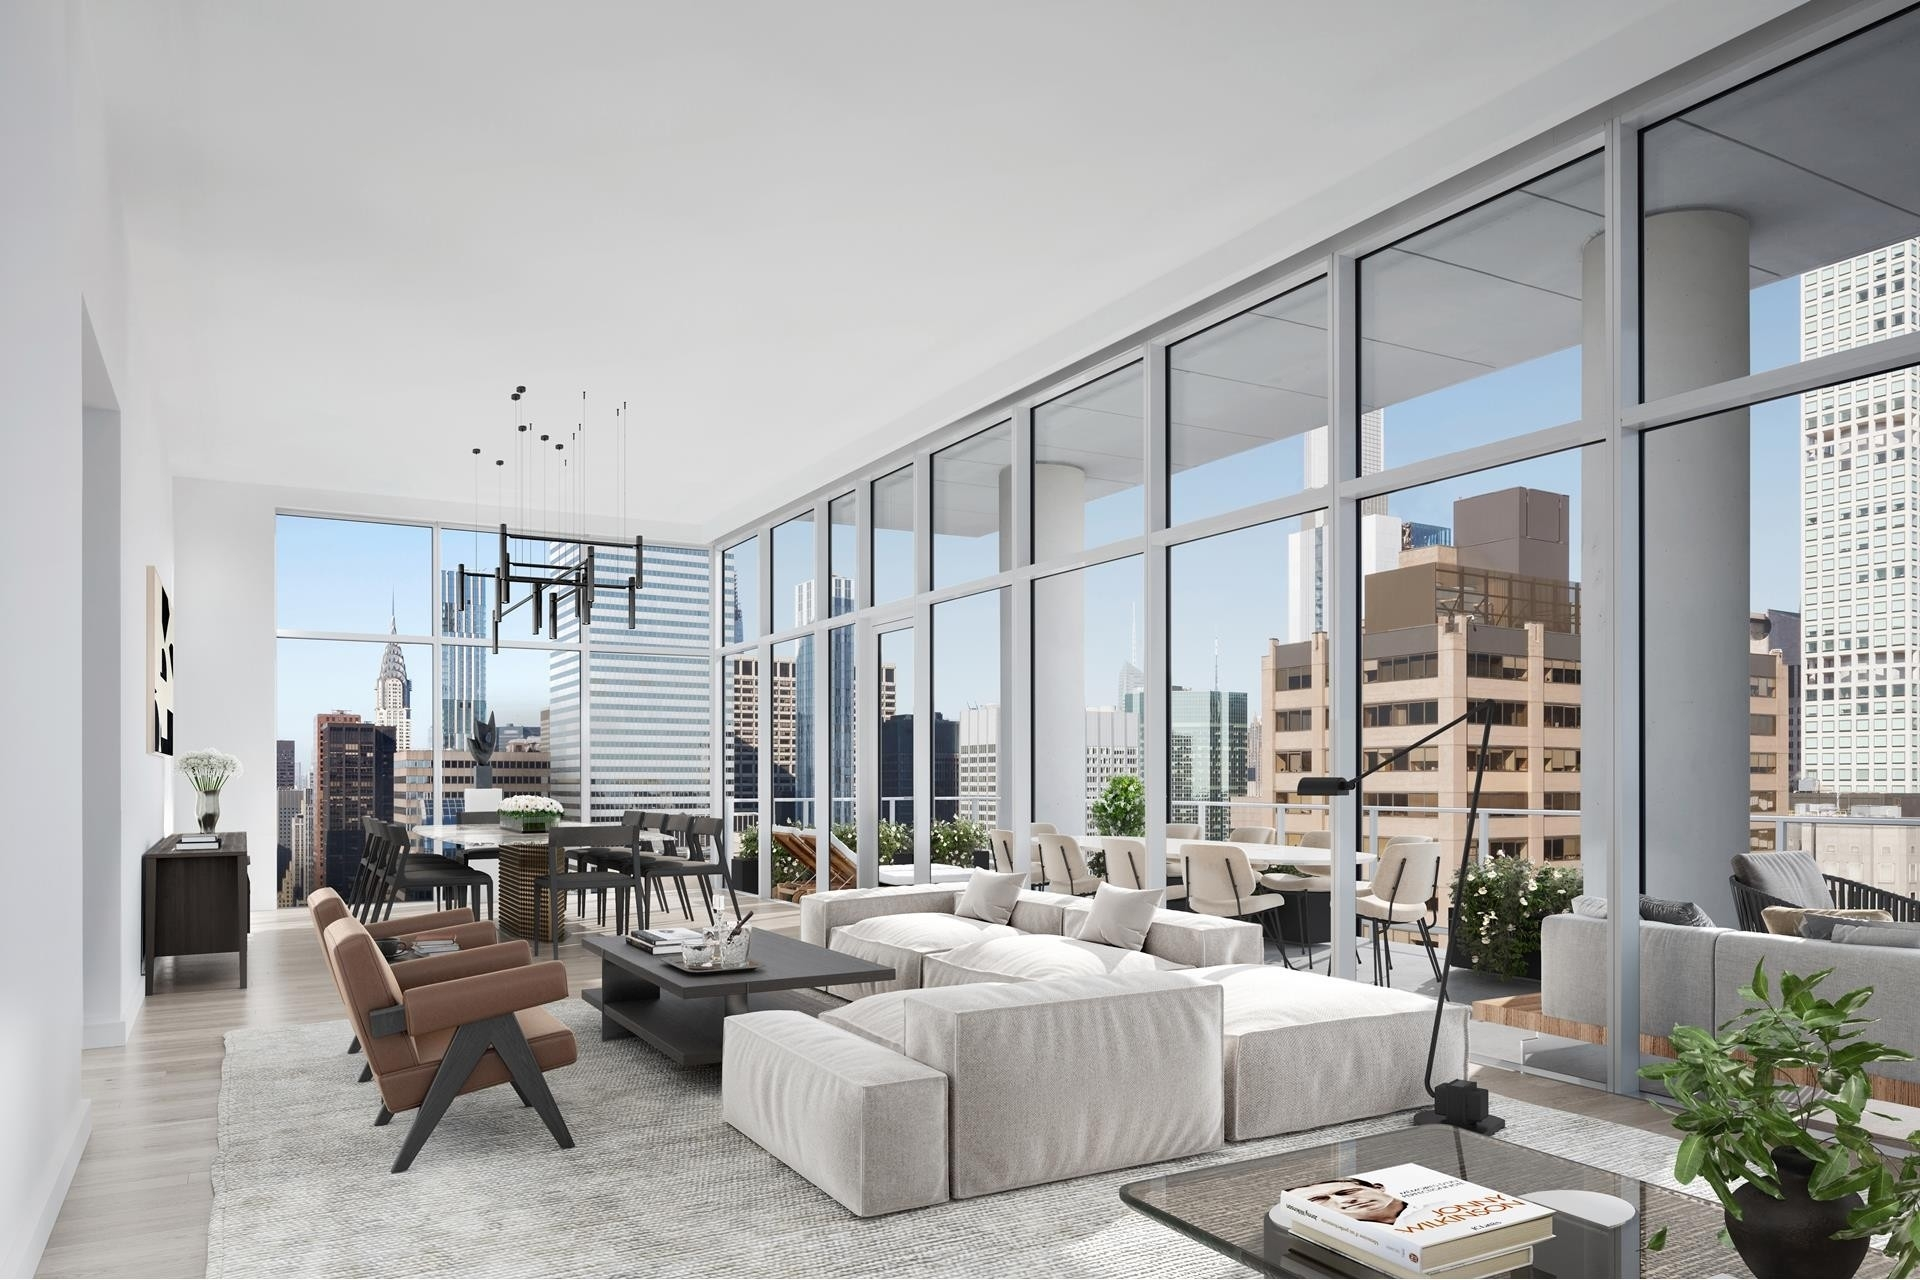 Property at 200 East 59th St, PH33 Midtown Manhattan, New York, NY 10022